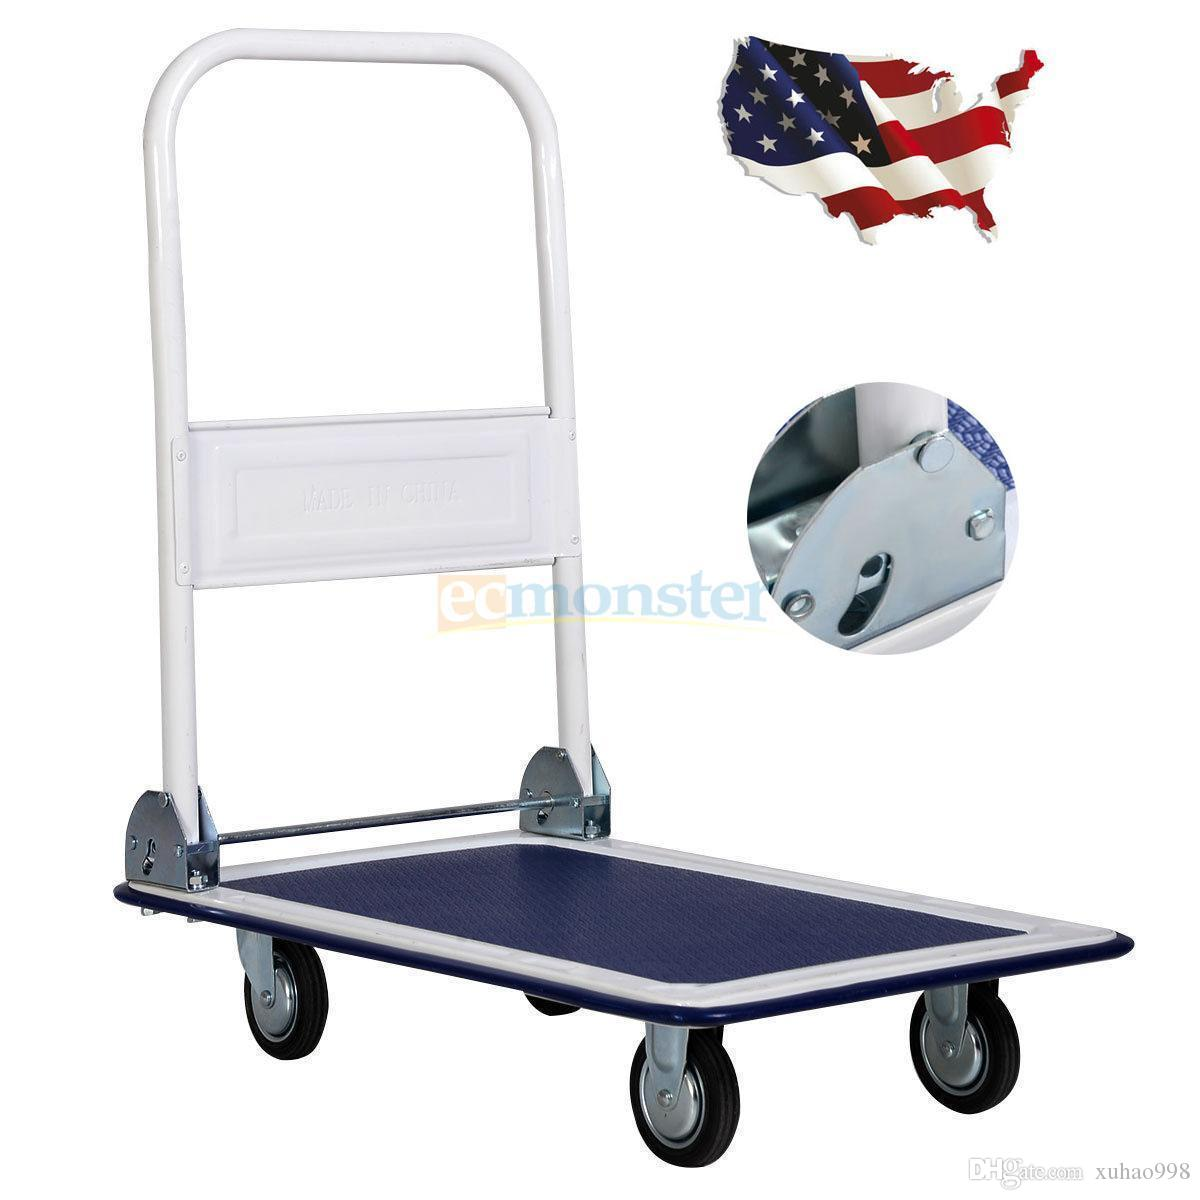 e956d87b7e7b 330lbs Platform Cart Dolly Folding Foldable Push Hand Truck Moving  Warehouse 3.0 average based on 2 product ratings 5 1 4 0 3 0 2 0 1 1 Woul